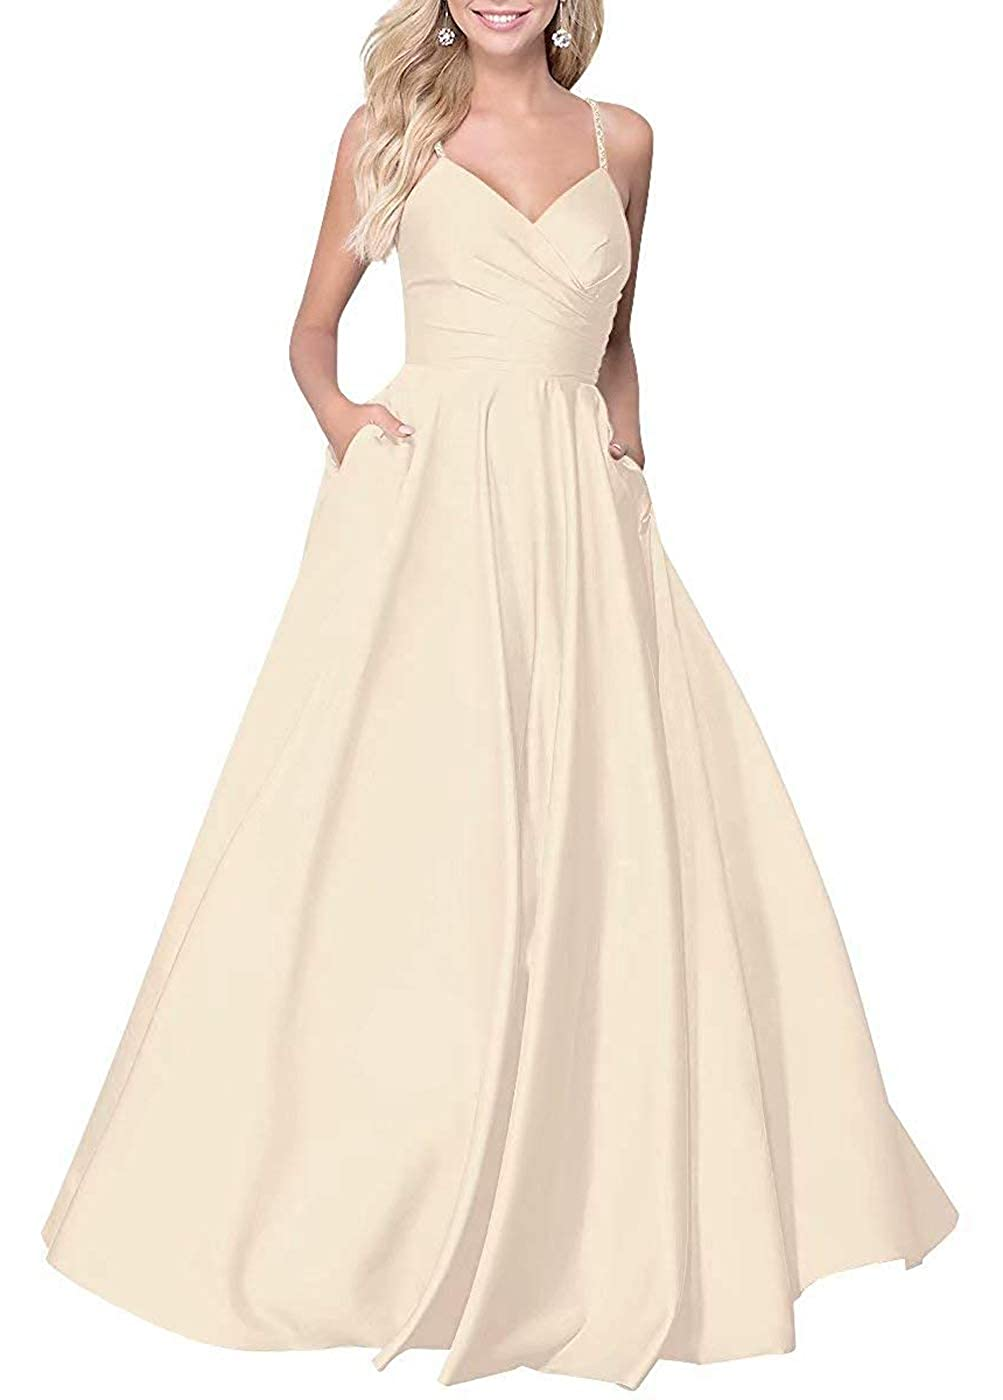 Champagne RTTUTED Satin ALine Long Prom Dresses for Women V Neck Formal Evening Gown with Pockets